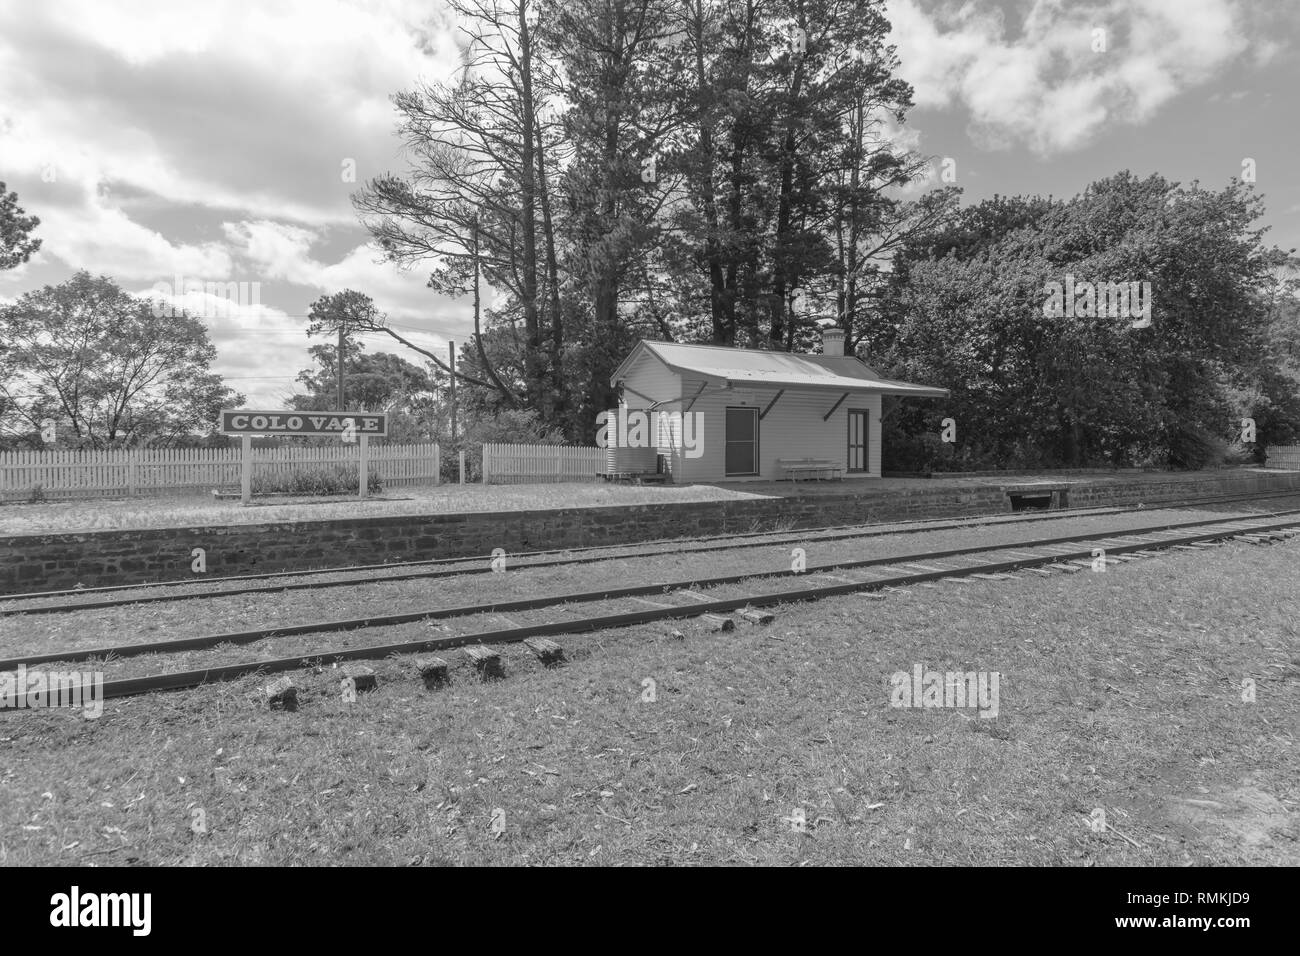 Colo Vale Railway Station - Stock Image